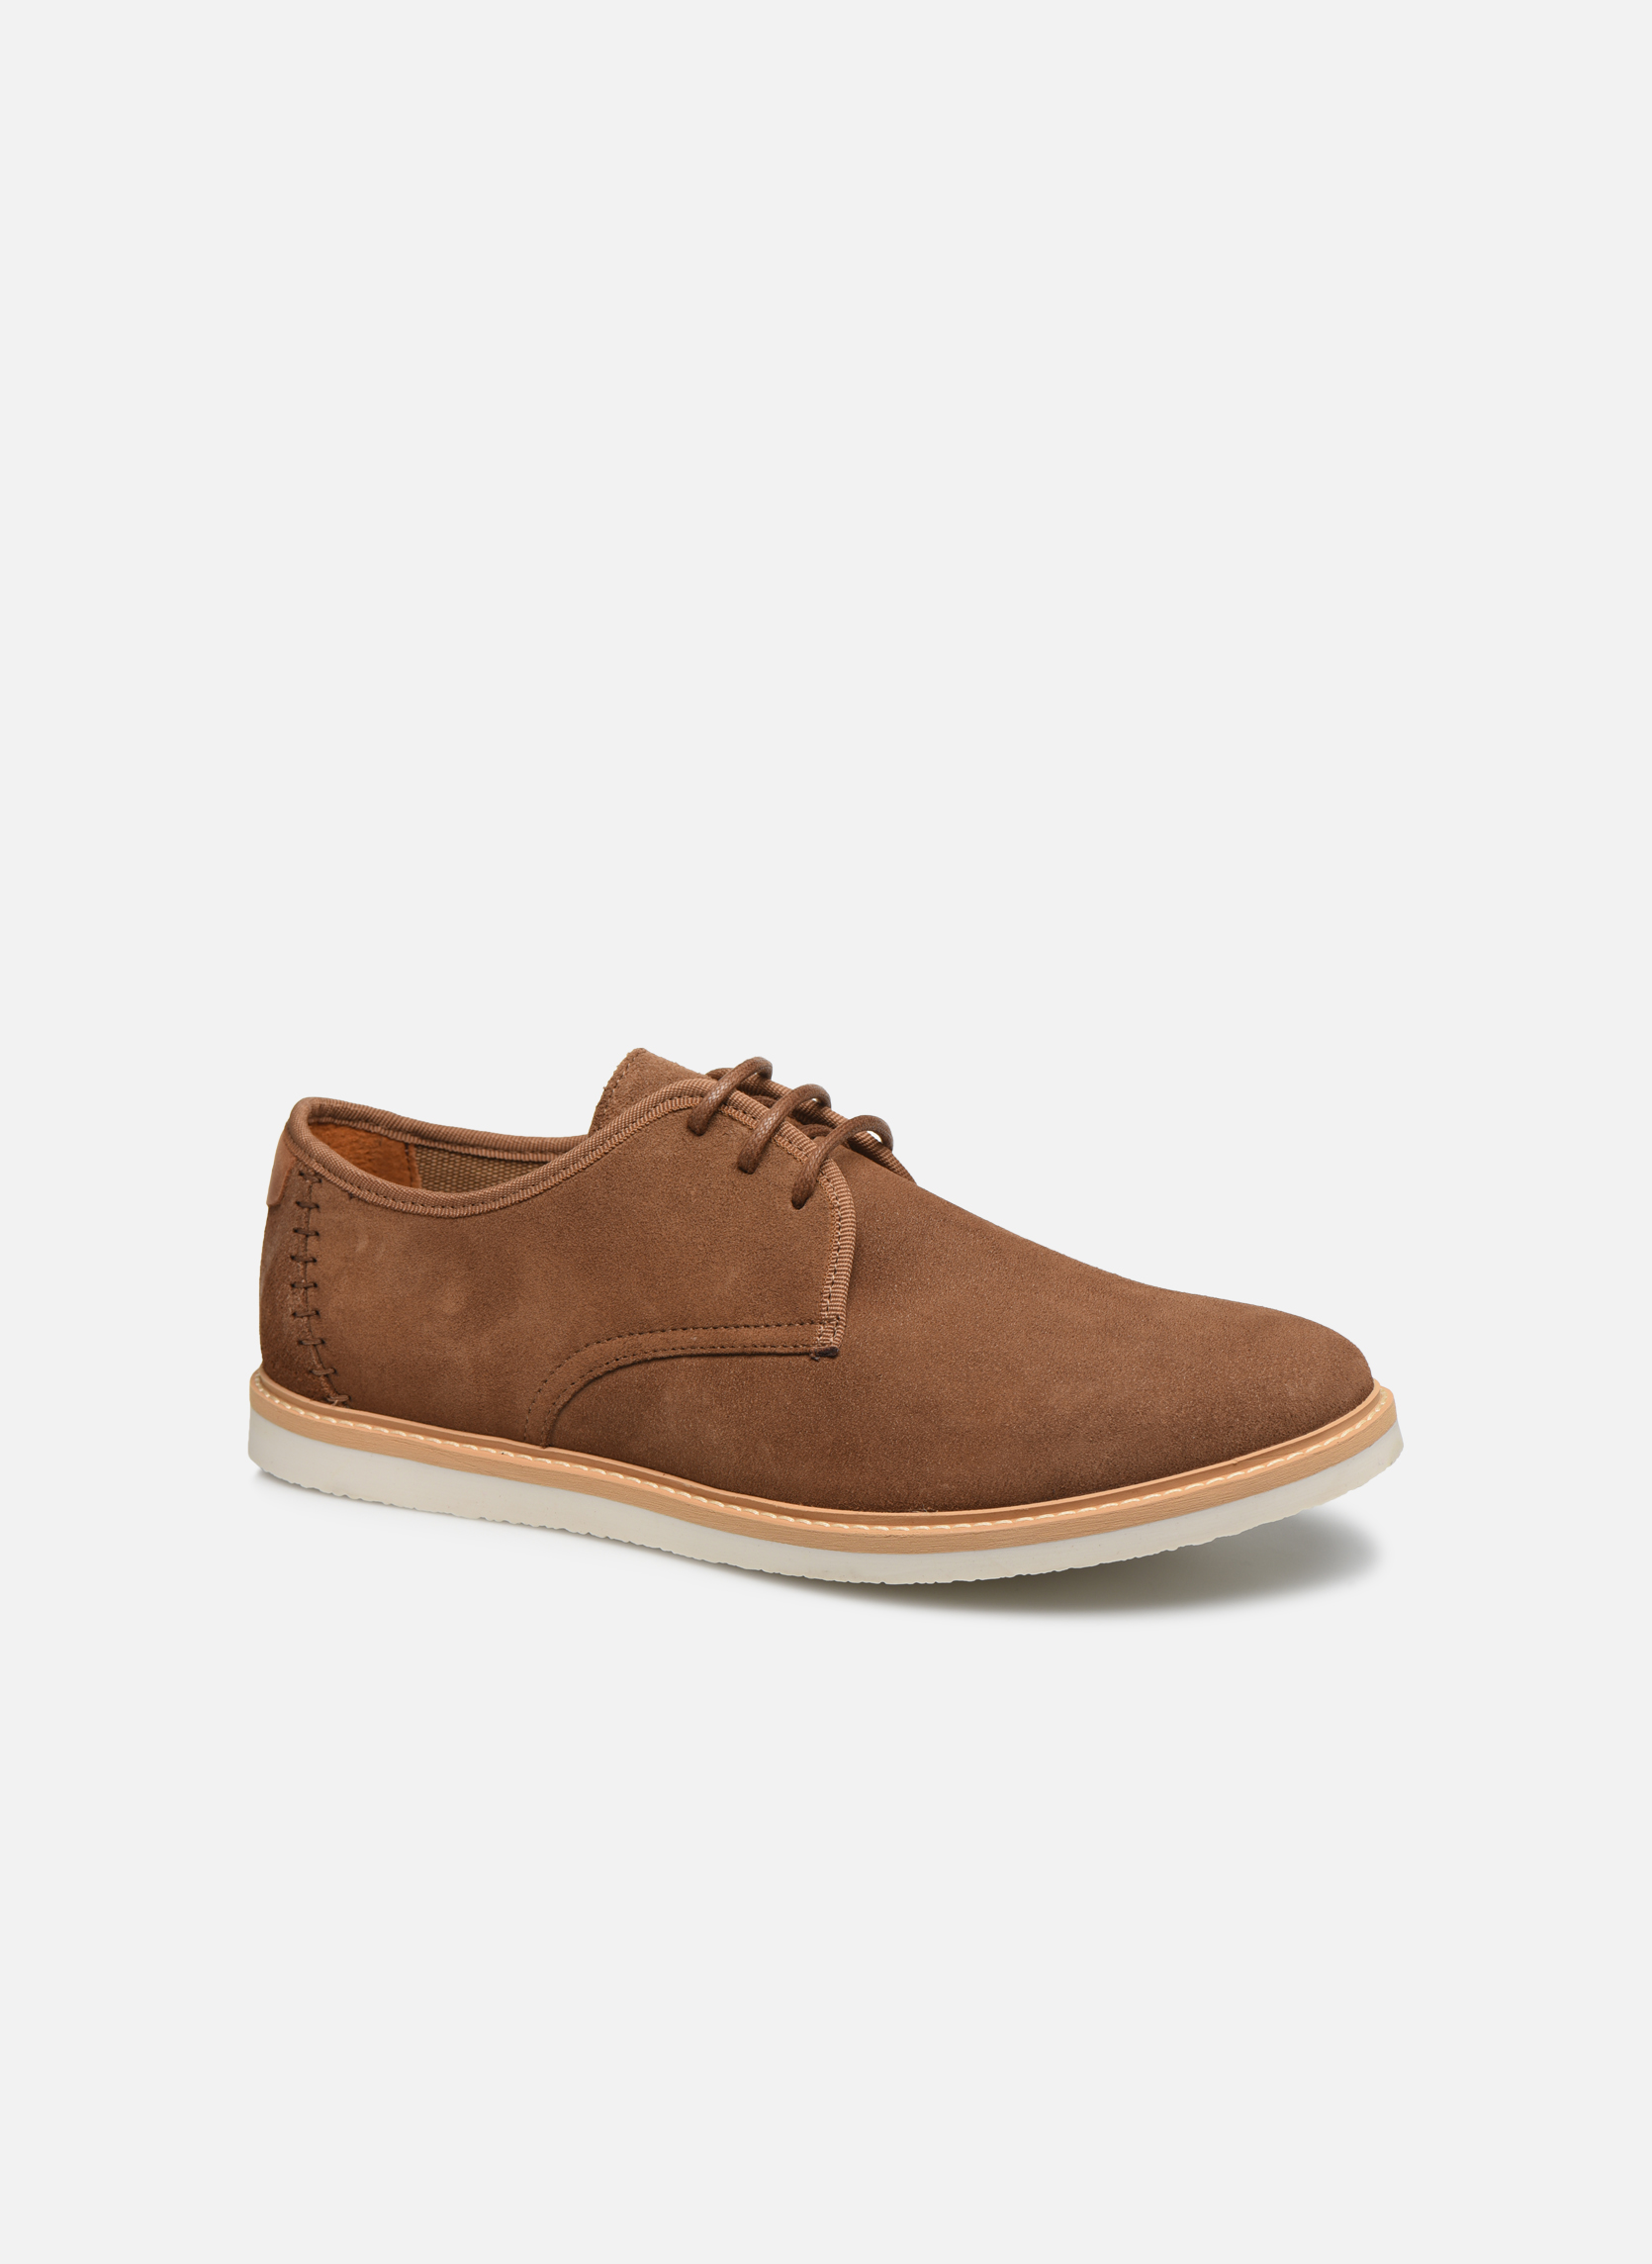 Fly Derby Suede